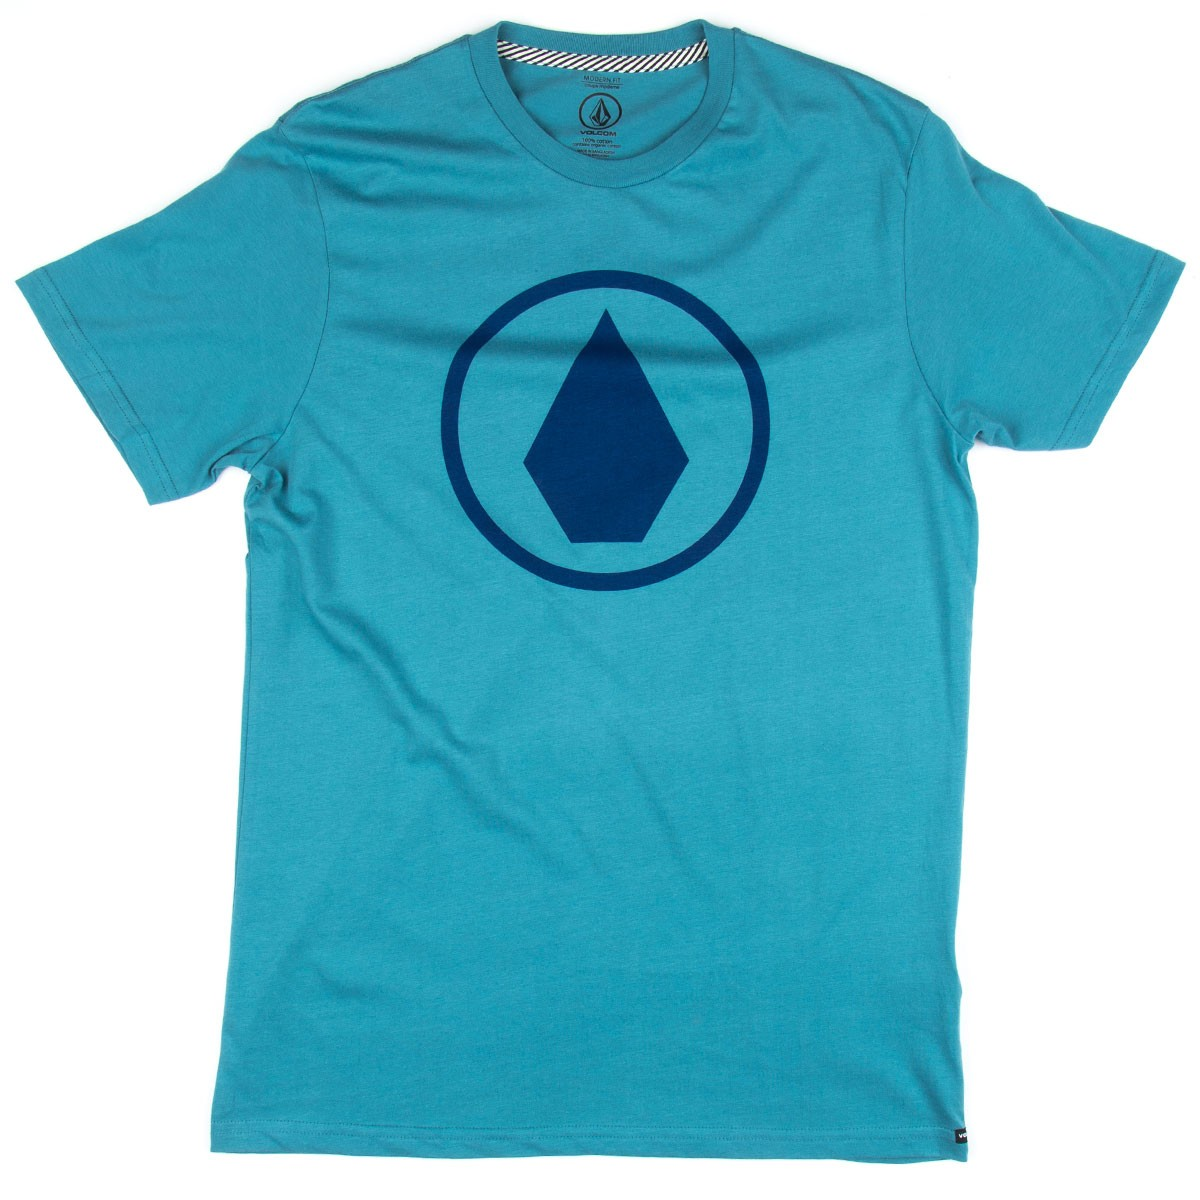 Volcom Solid Stone T-Shirt - Stormy Blue